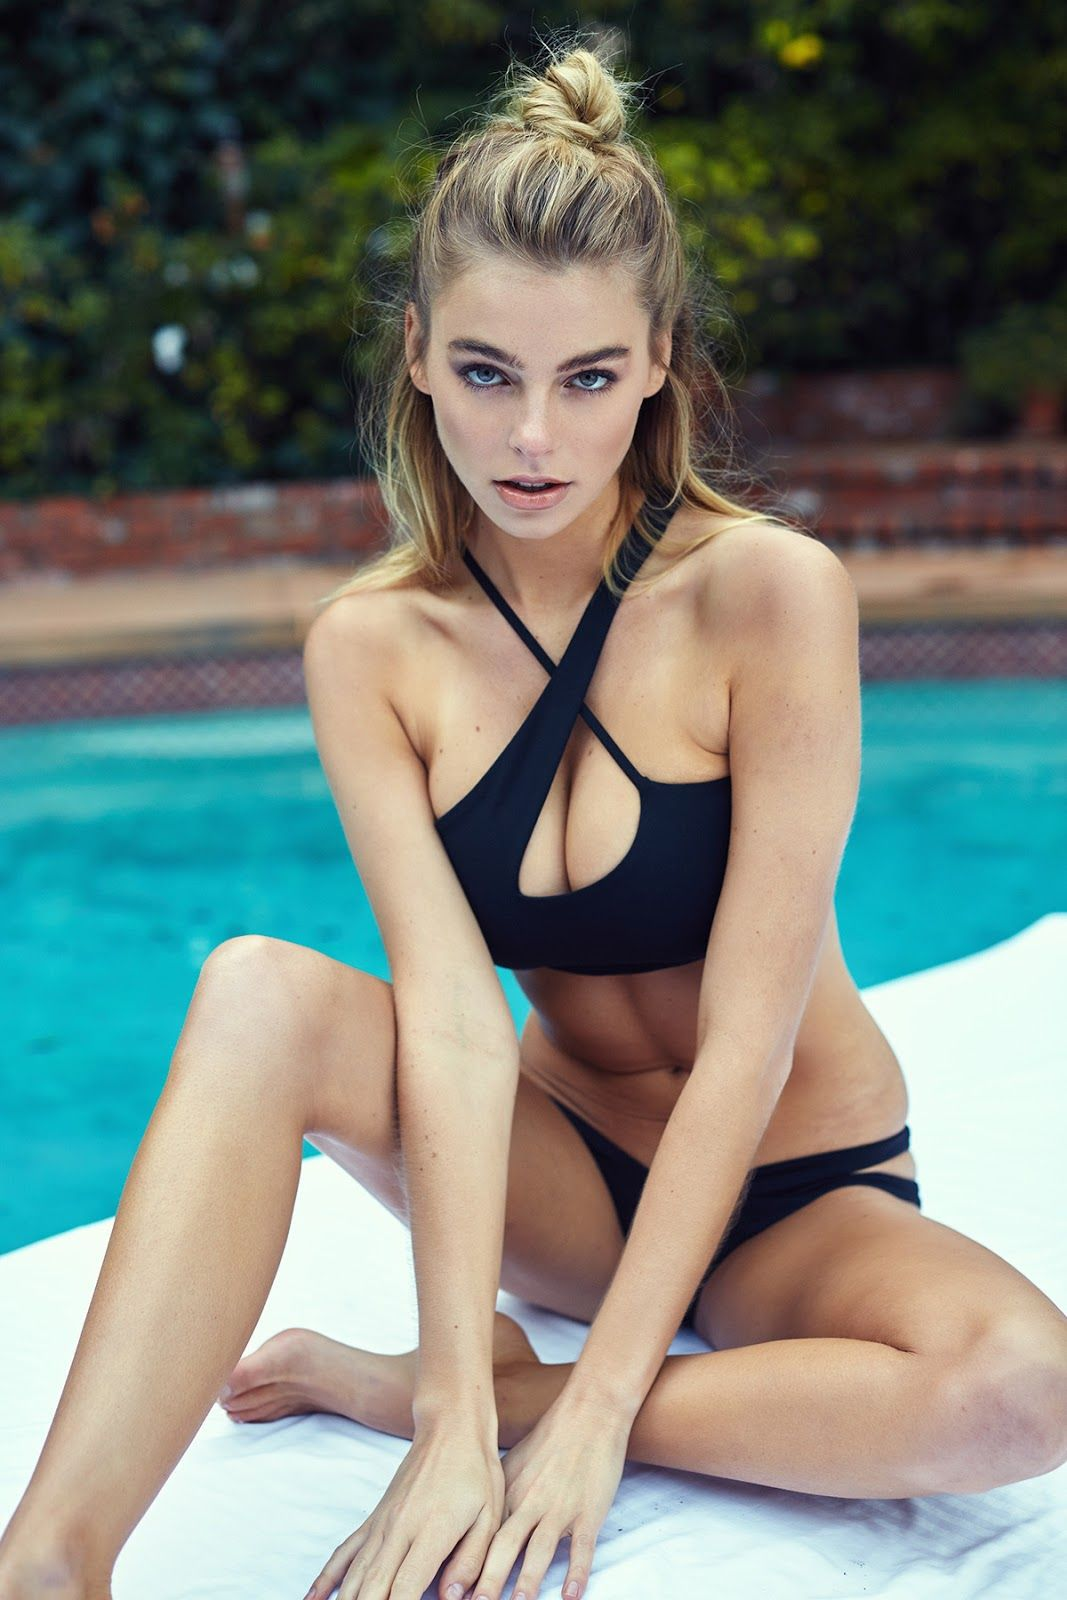 Pic Elizabeth Turner nude photos 2019